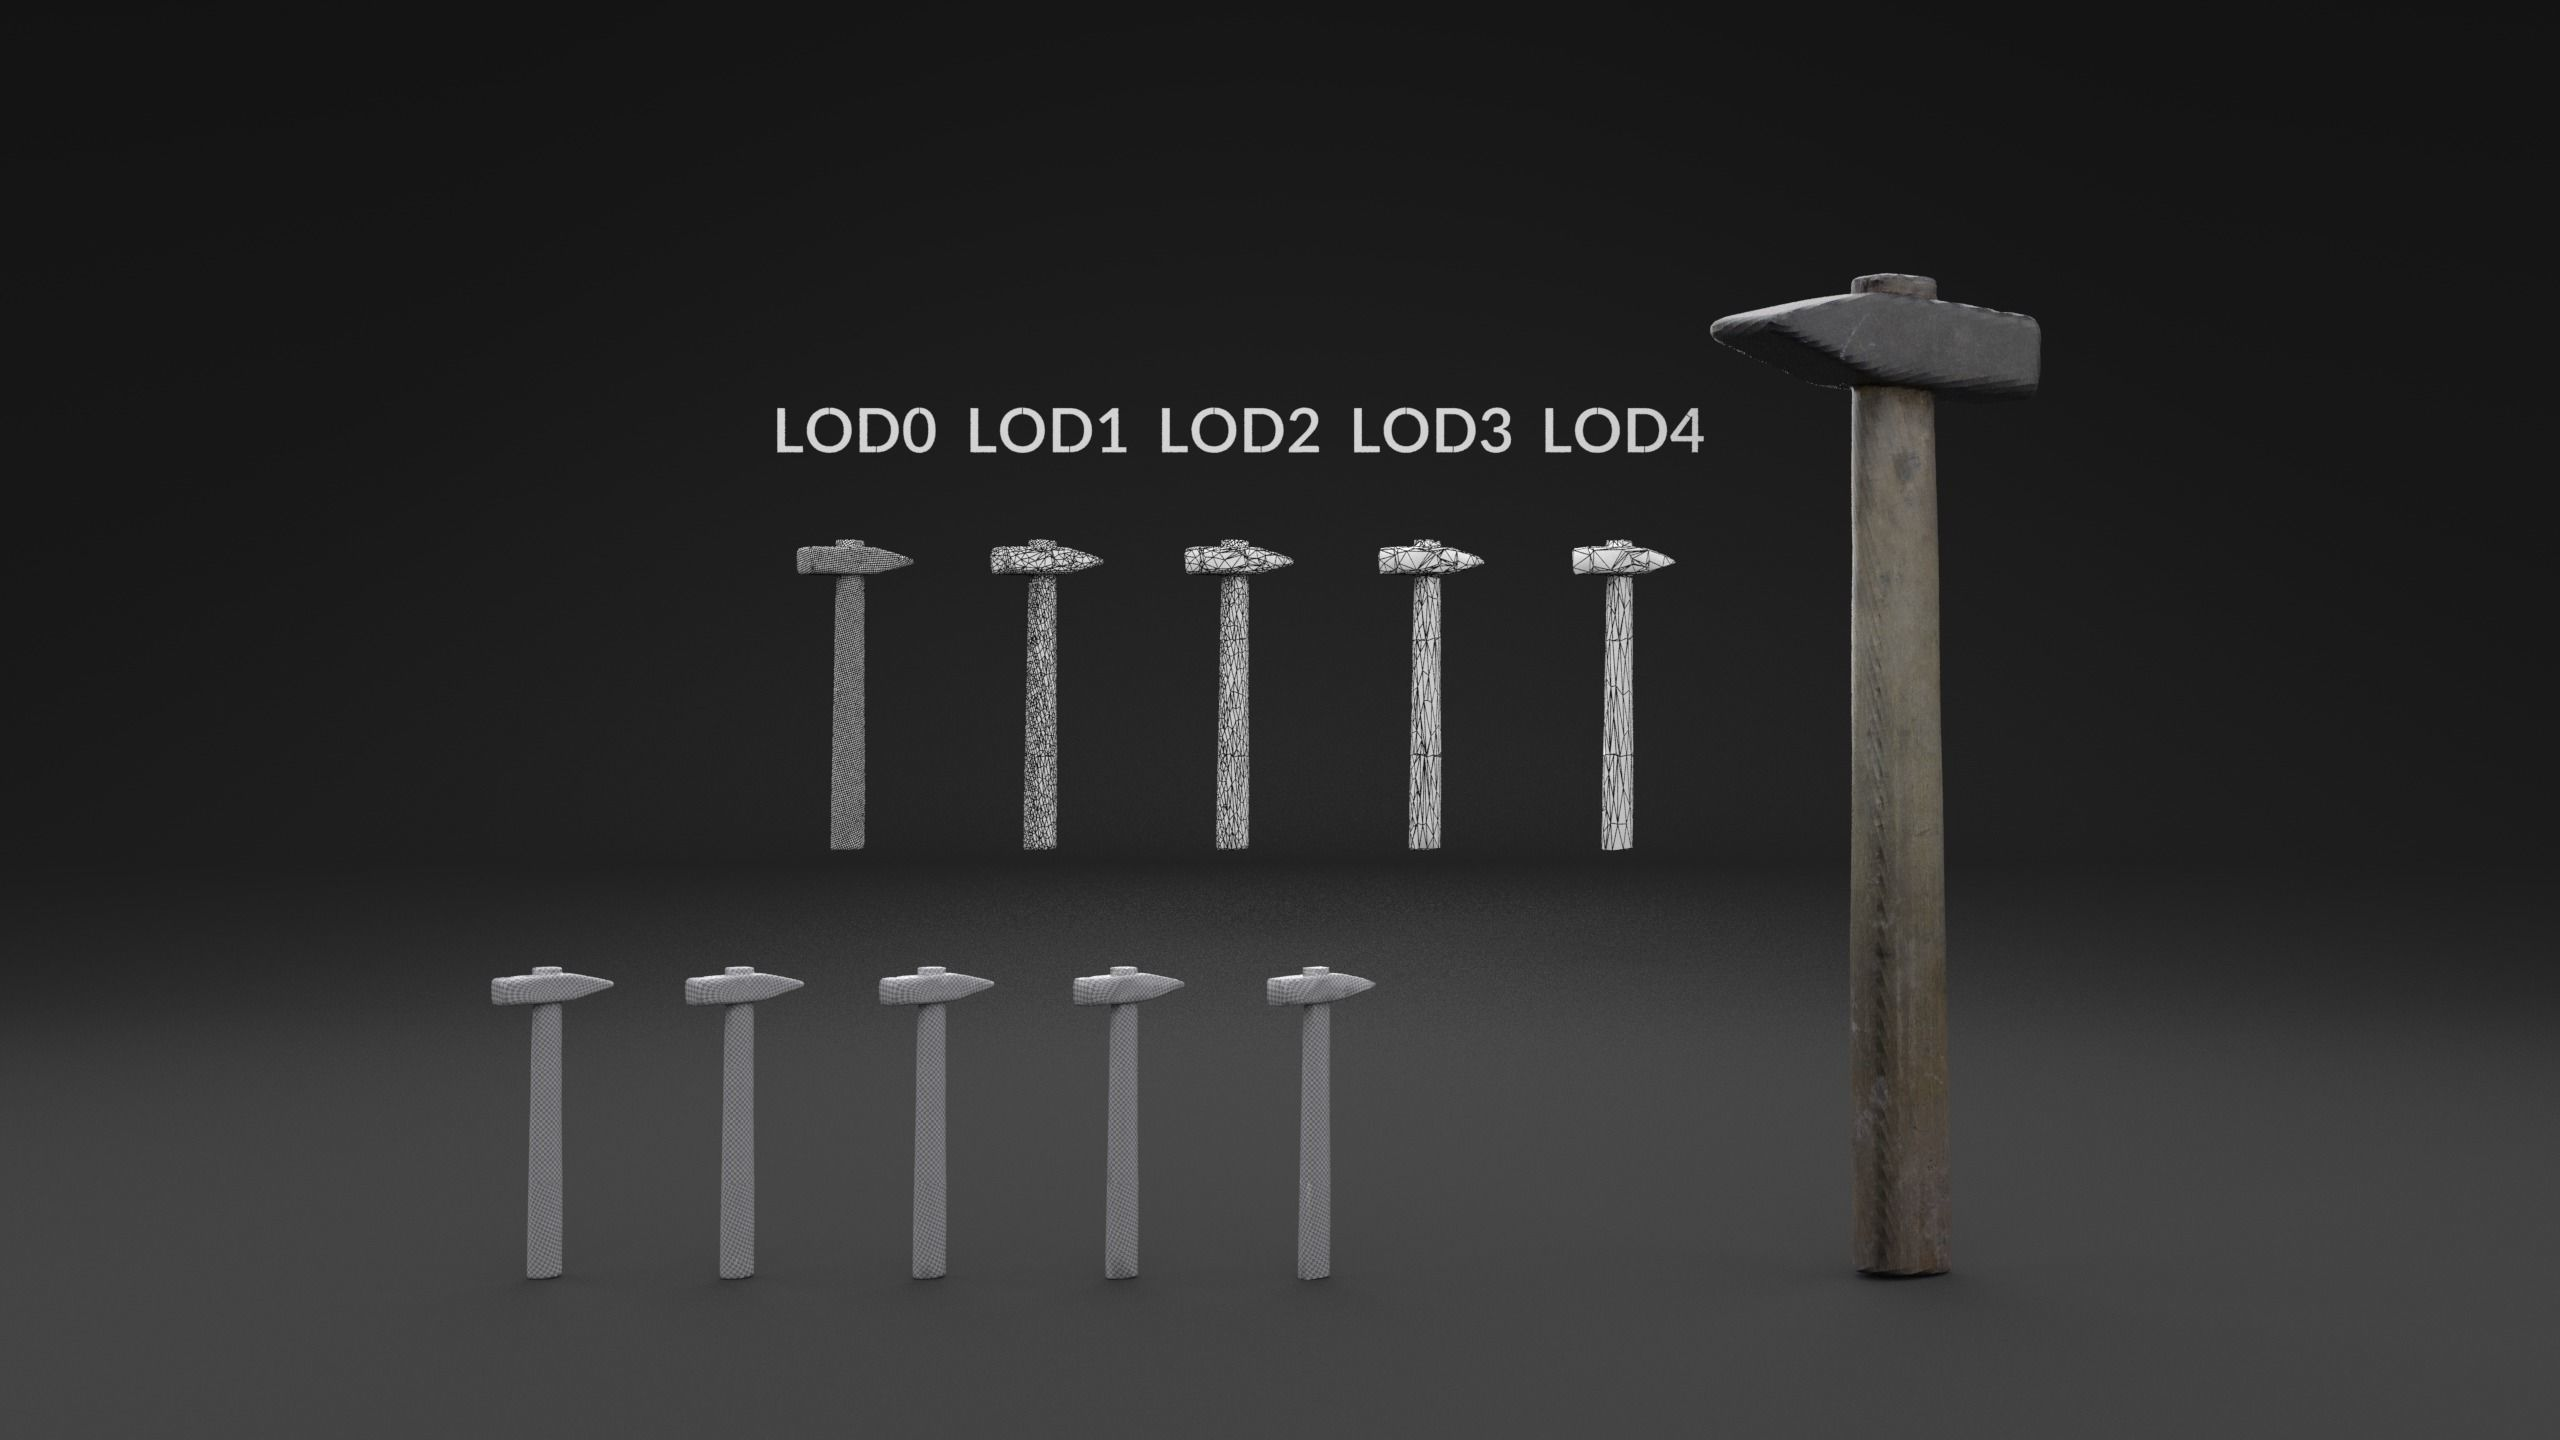 Scanned Old Damaged Hammer LOW POLY LODs